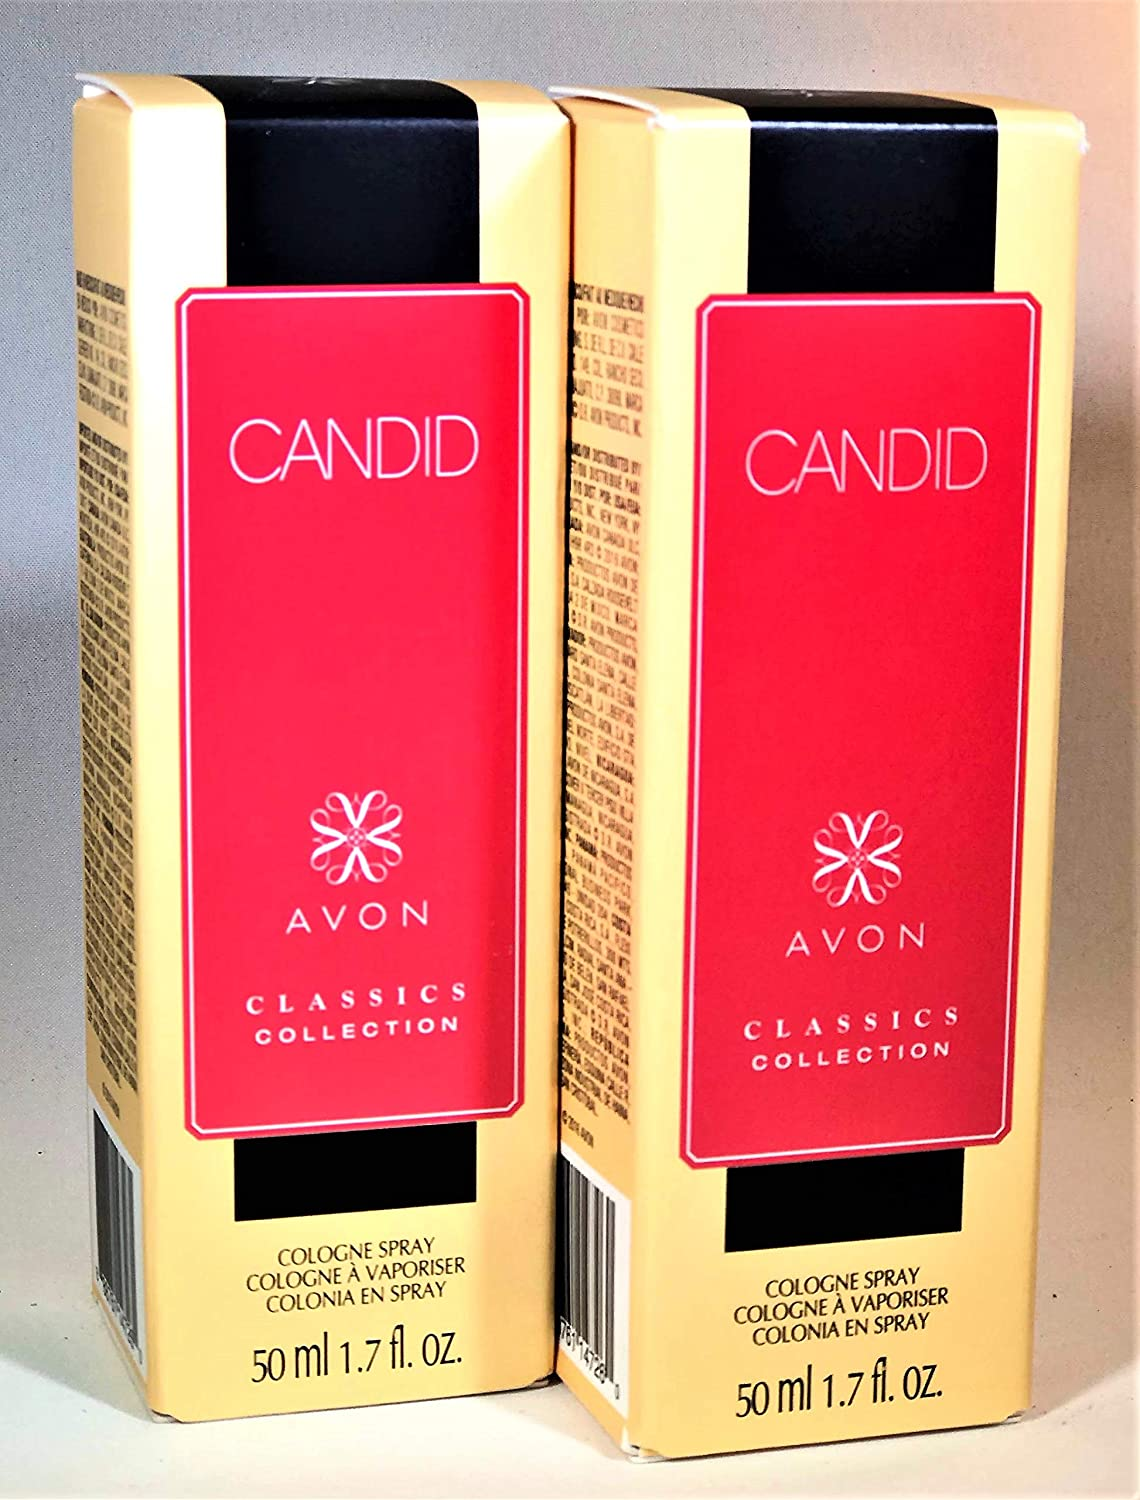 Amazon.com : Avon Candid Classics collection cologne spray lot of 2 : Beauty